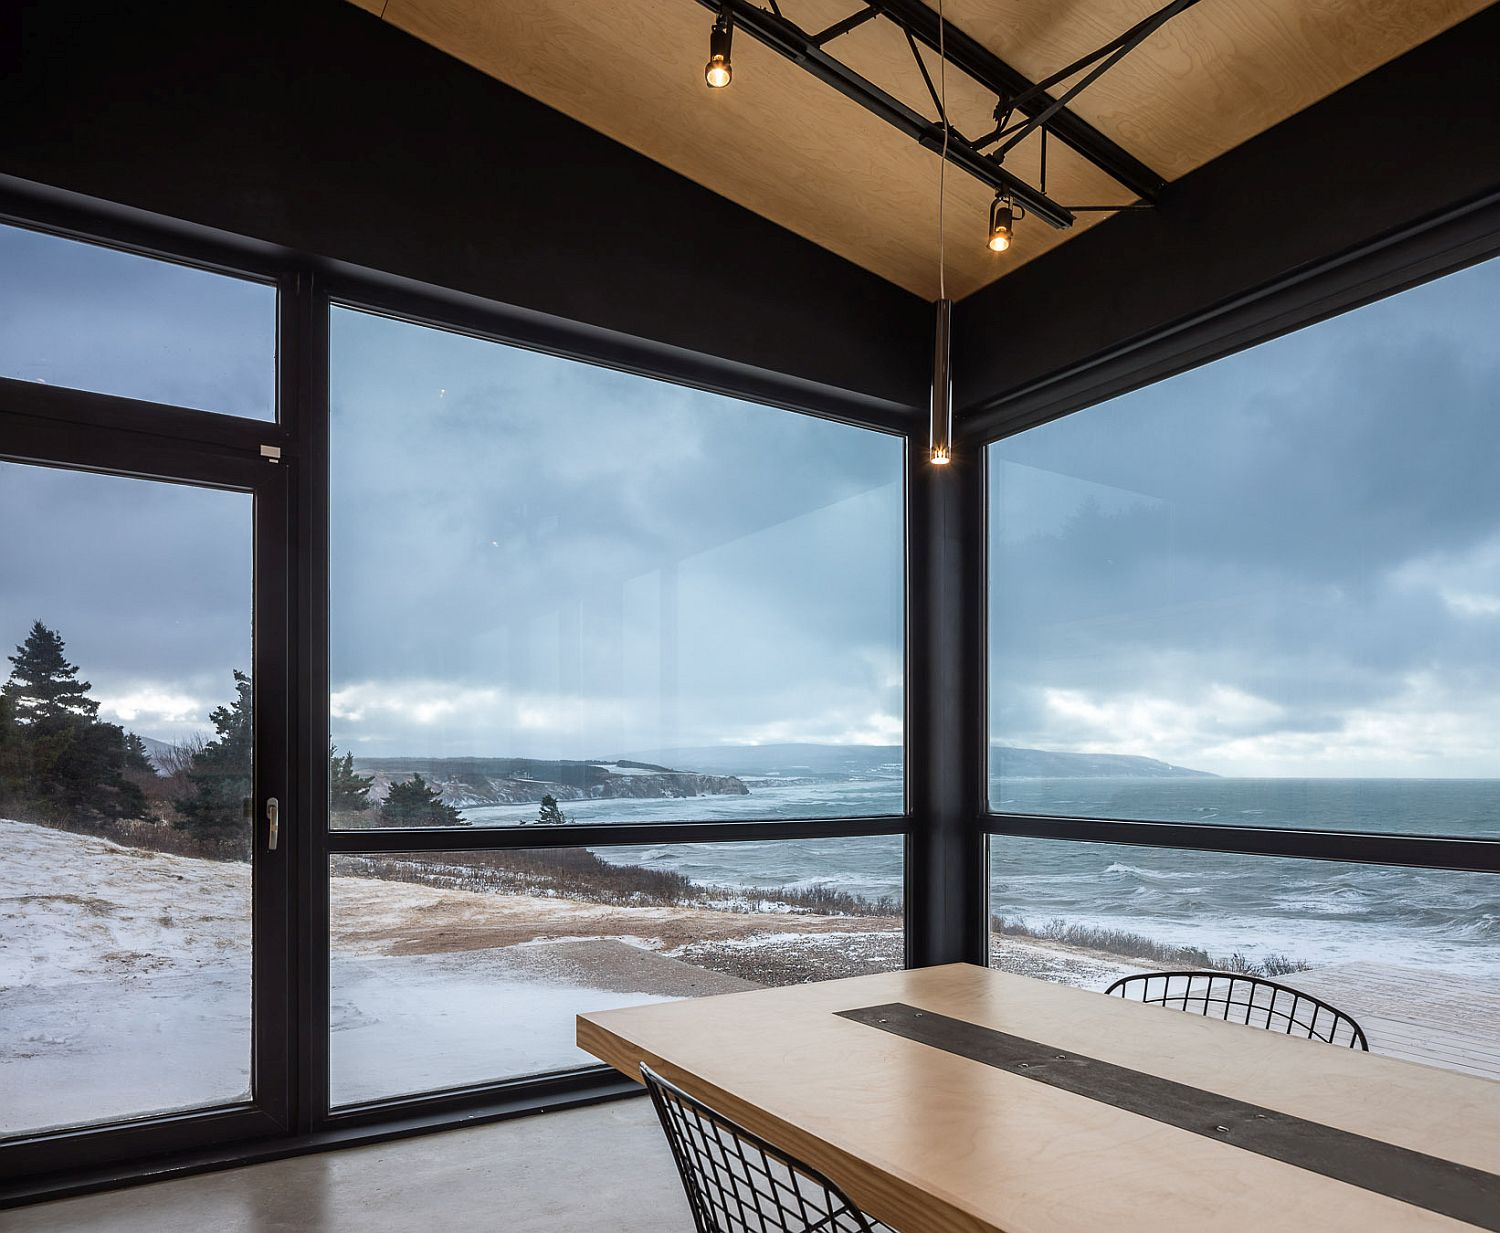 View of the ocean and rough coastline from the dining room